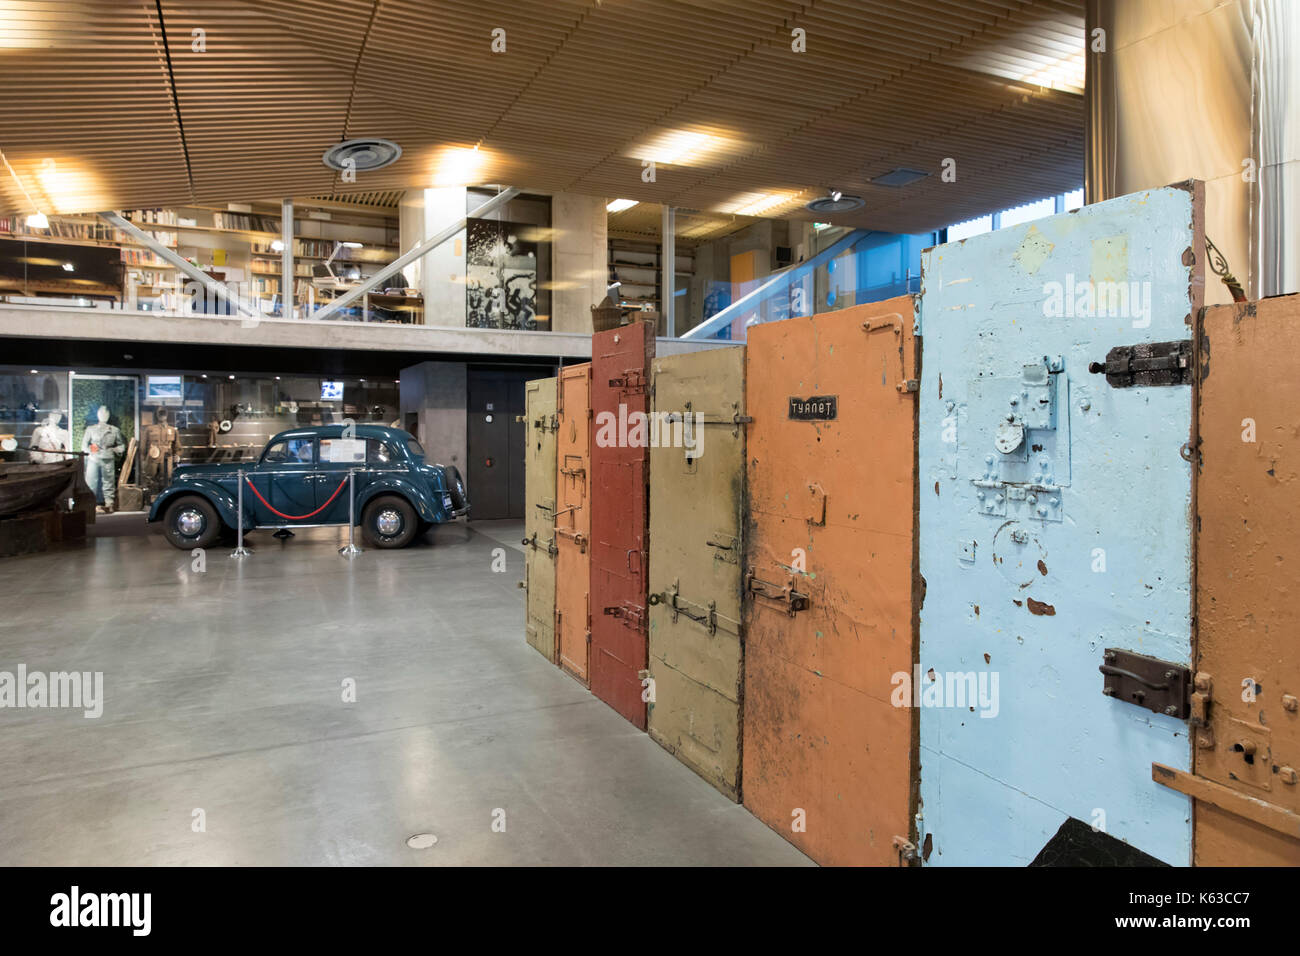 Museum of Occupations with prison doors, Tallinn, Estonia, Europe - Stock Image